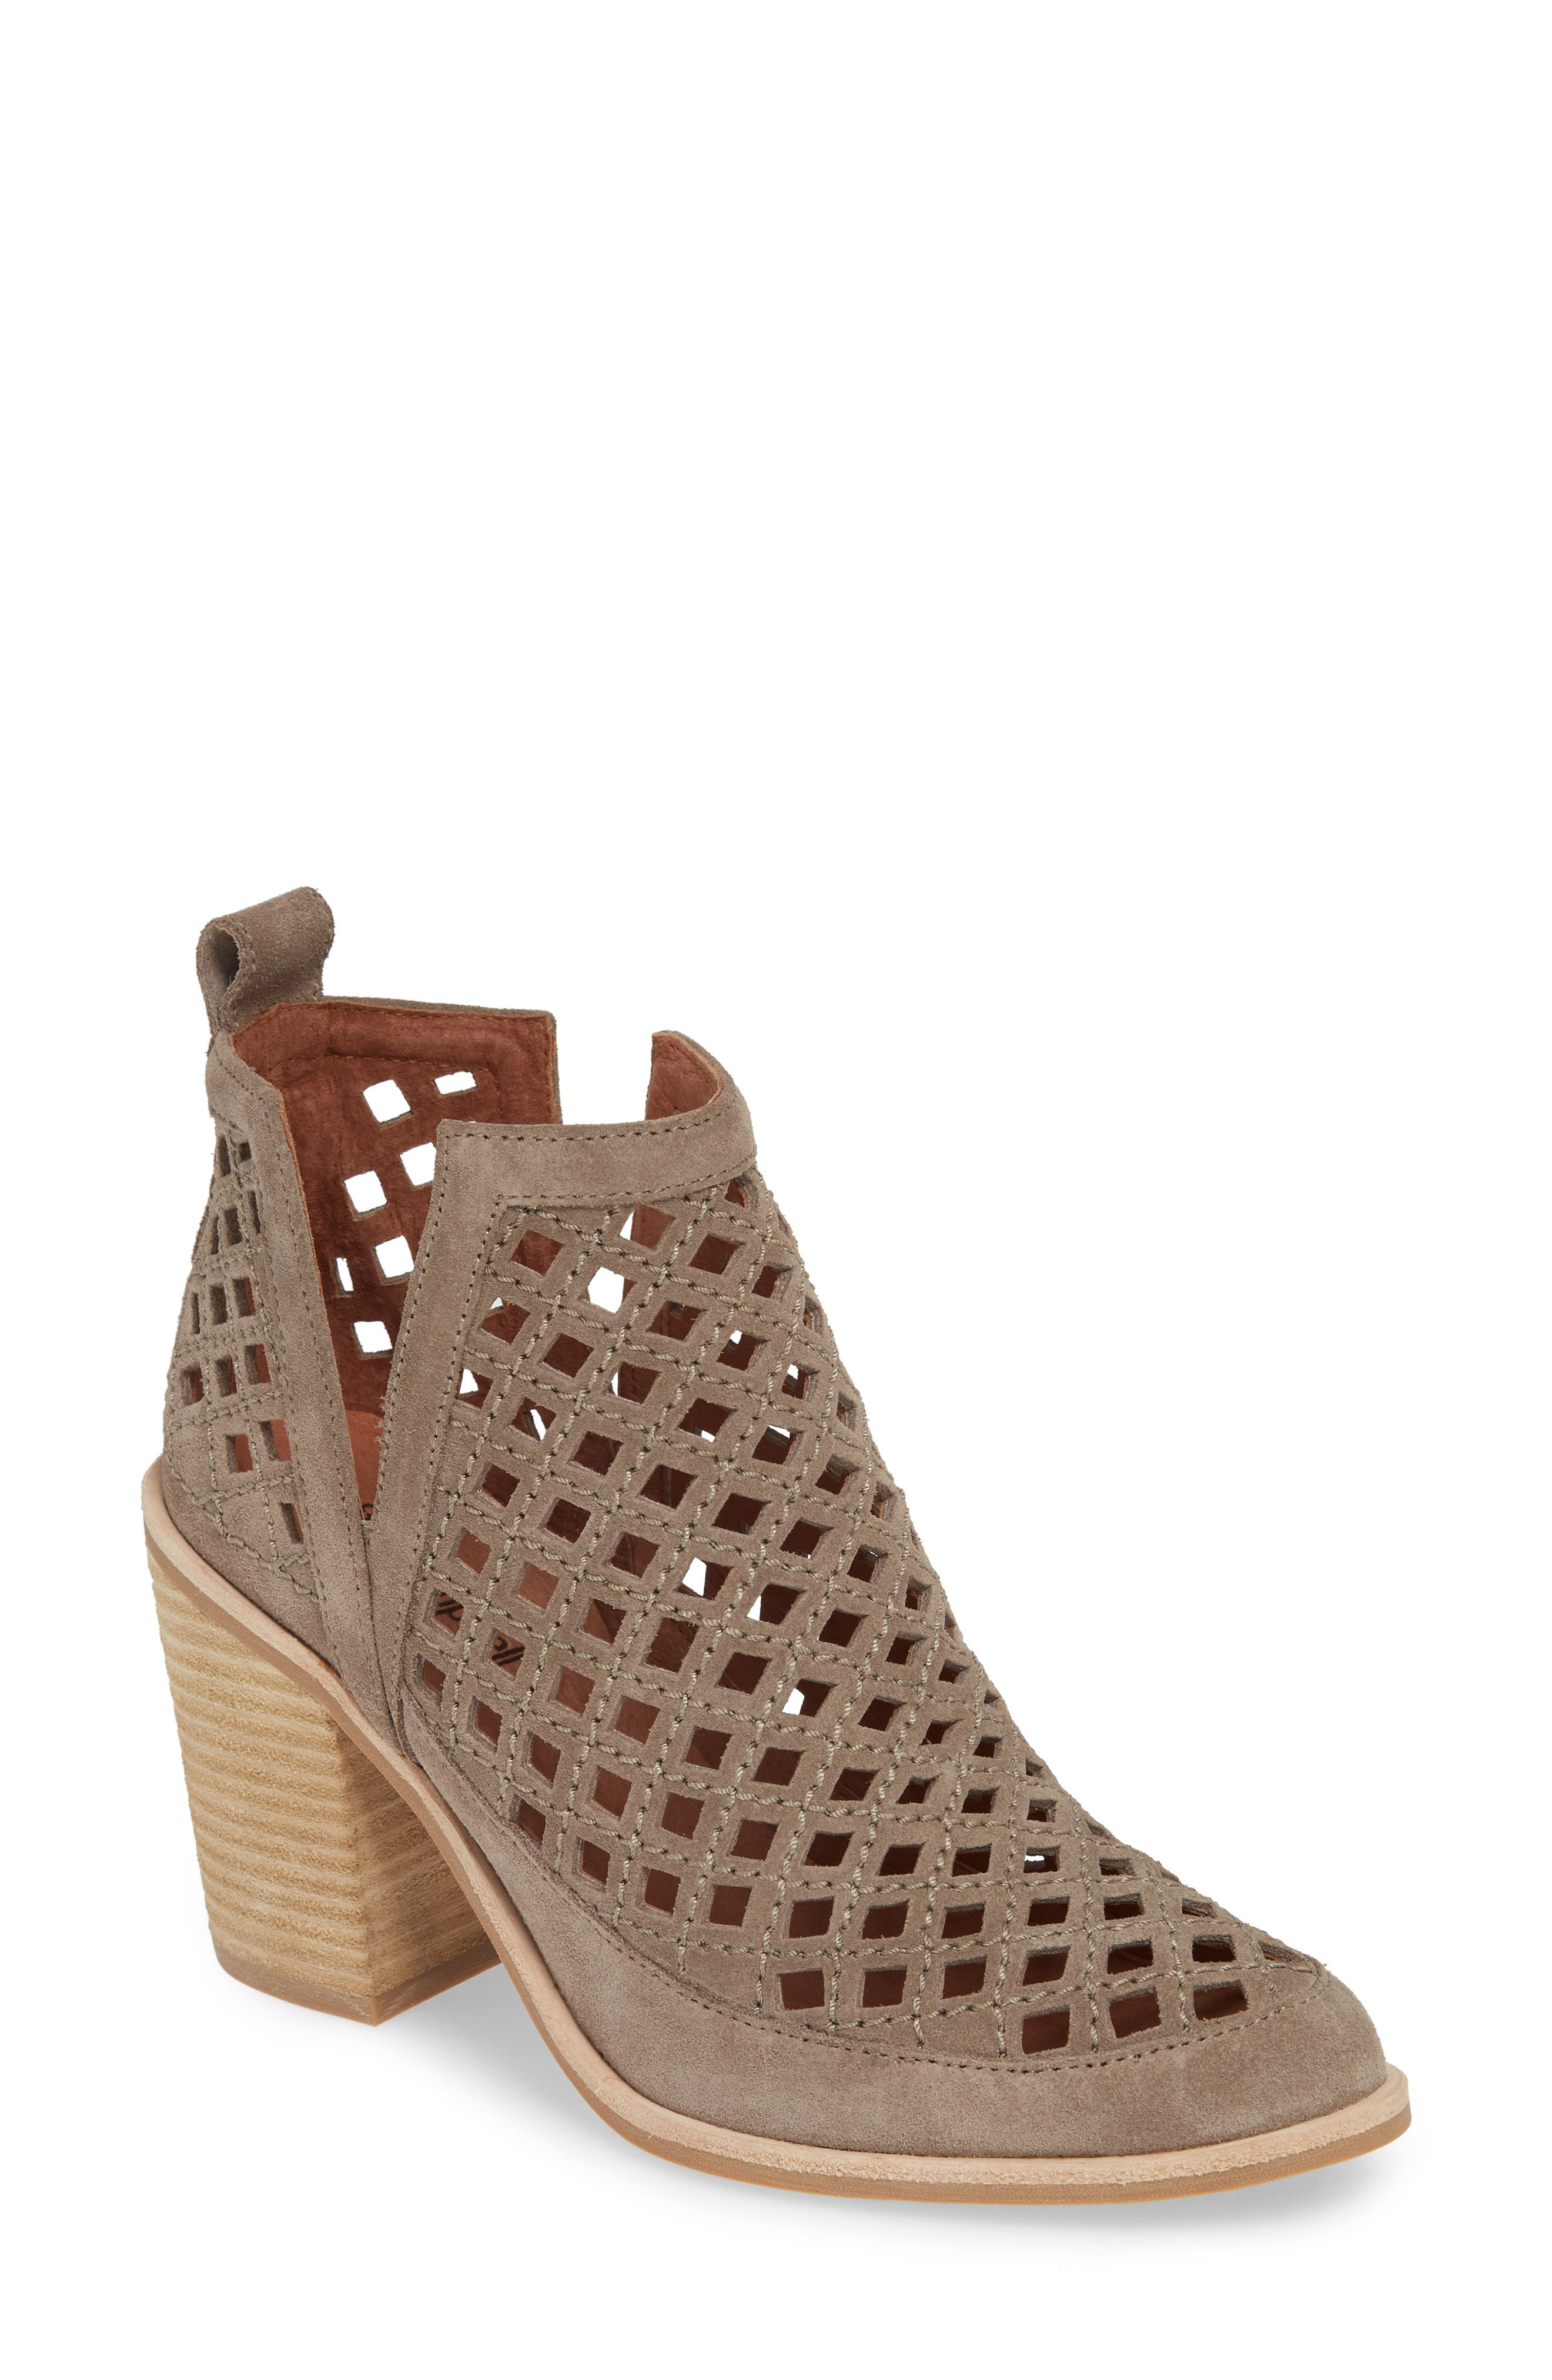 JEFFREY CAMPBELL, Kamet Bootie, Main thumbnail 1, color, TAUPE SUEDE